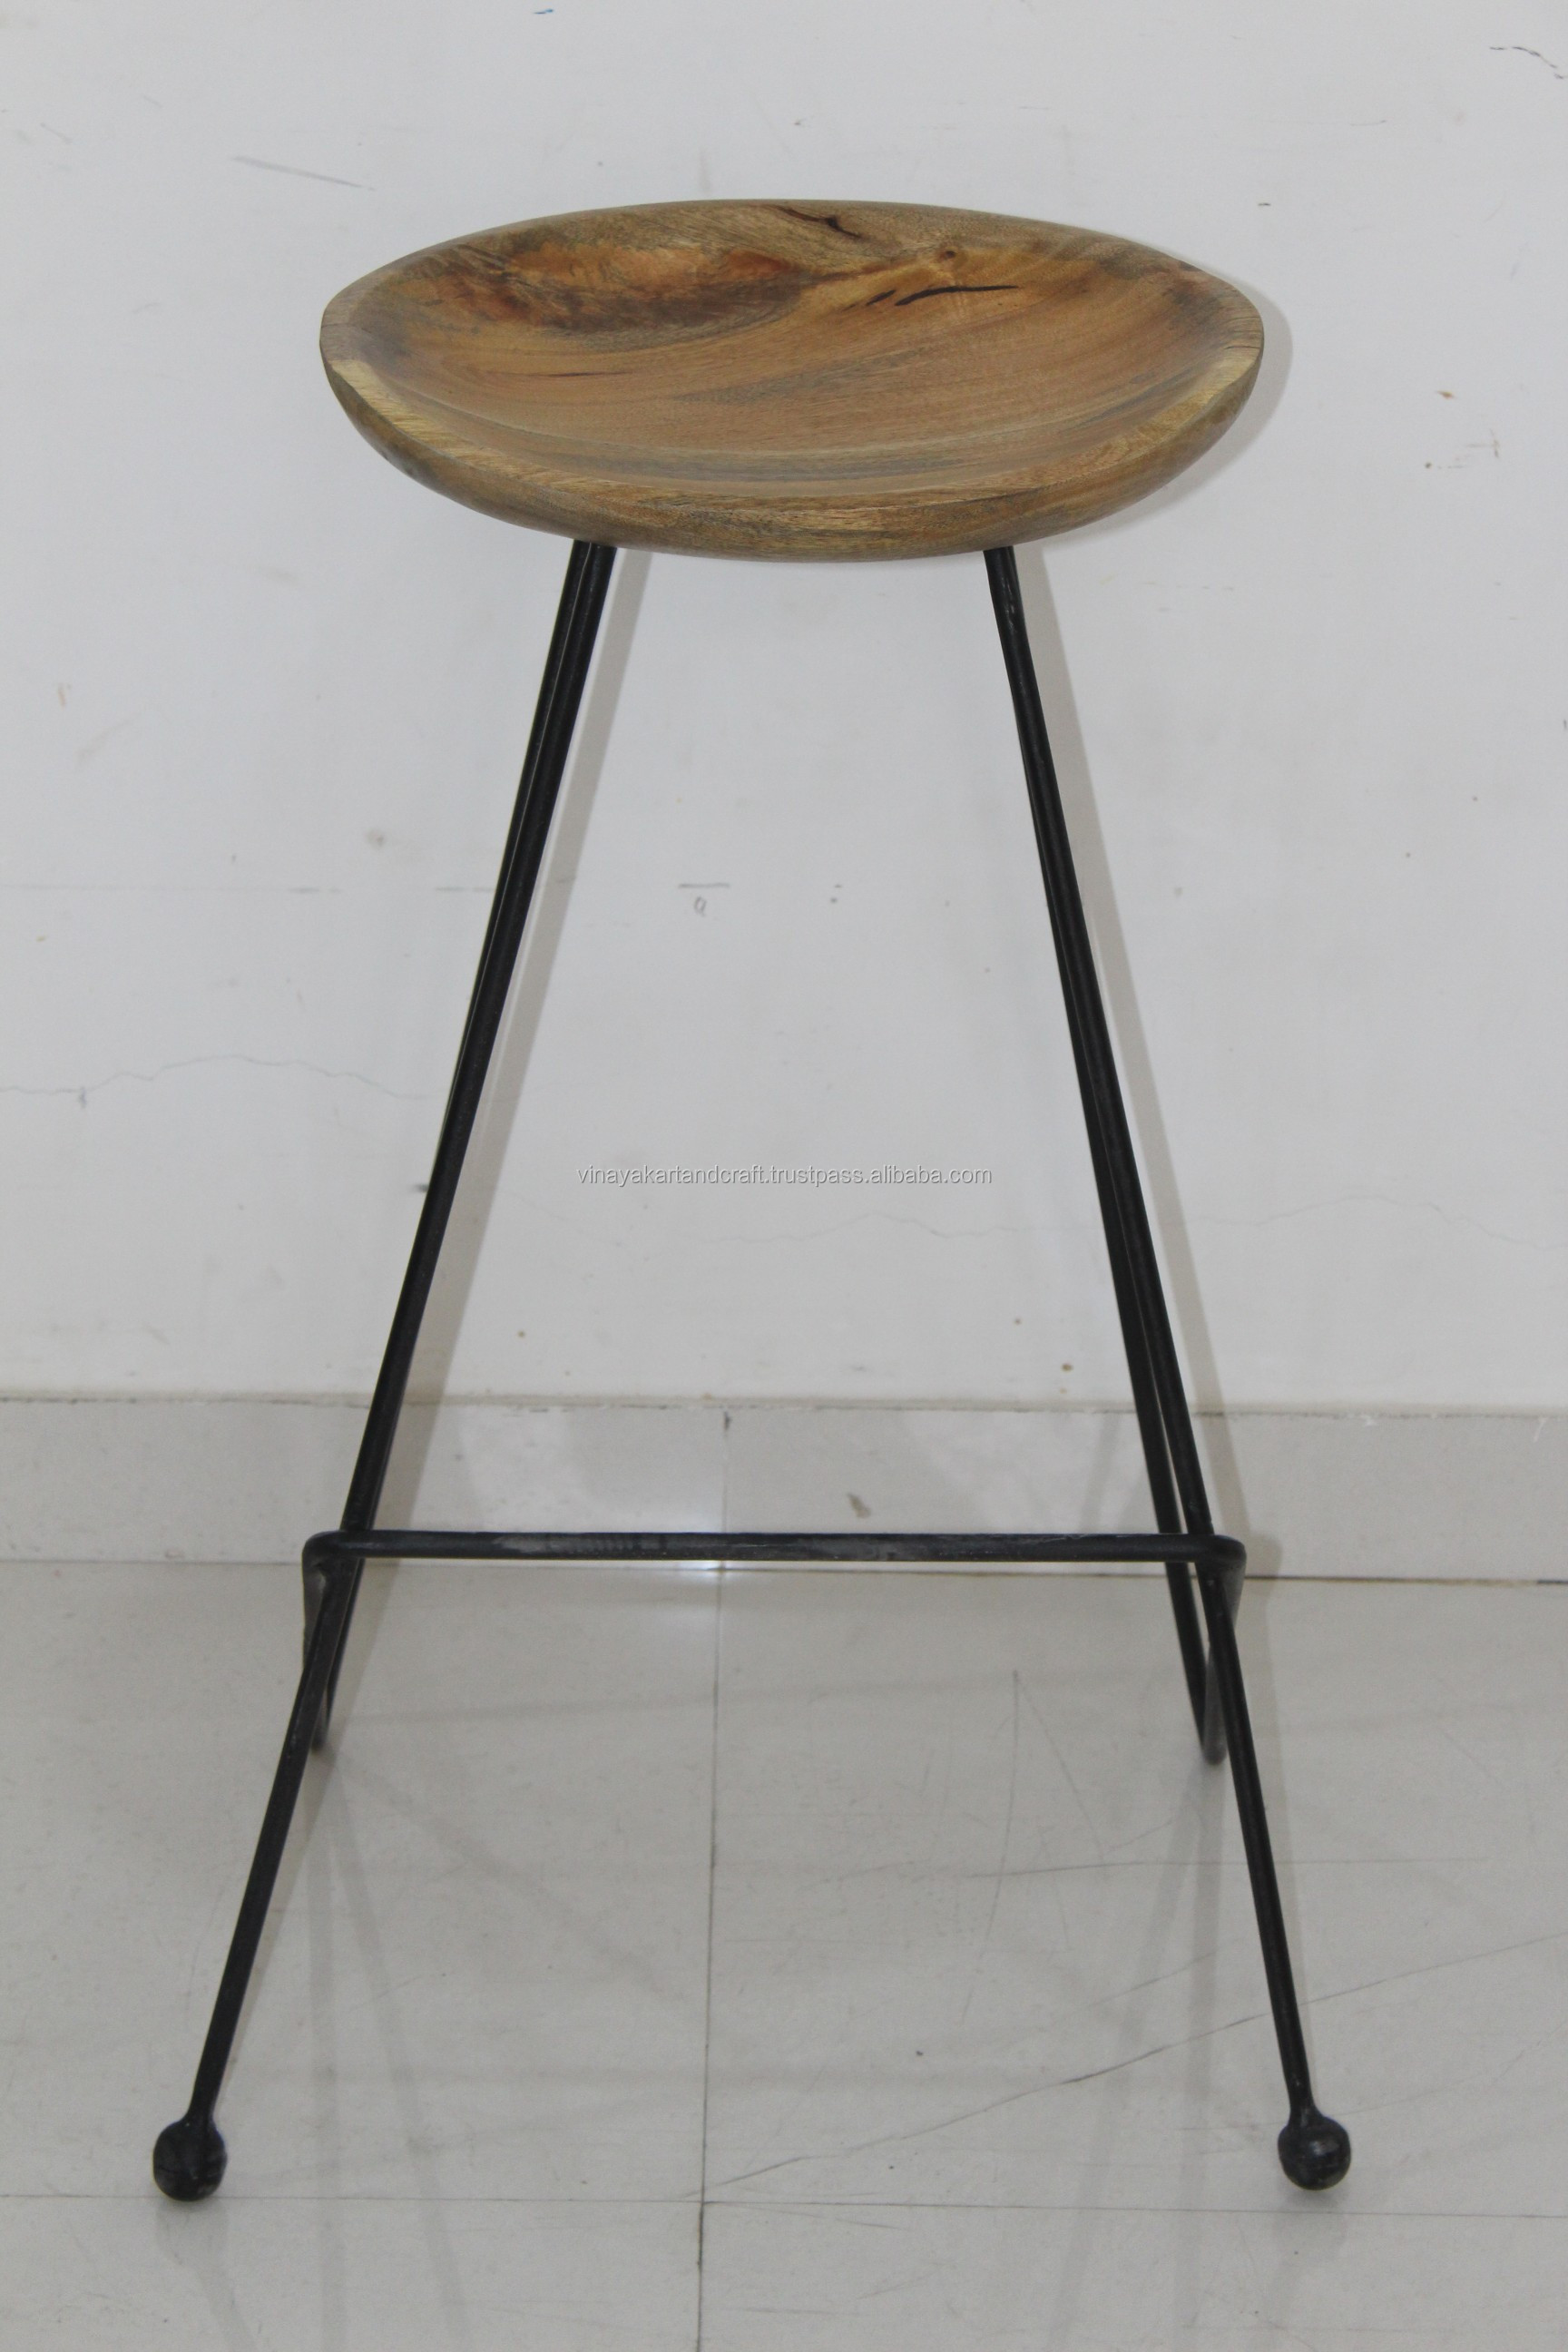 Vintage industrial bar stool new original modern wooden seat metal wire bar stool jodhpur antique wooden metal bar stool